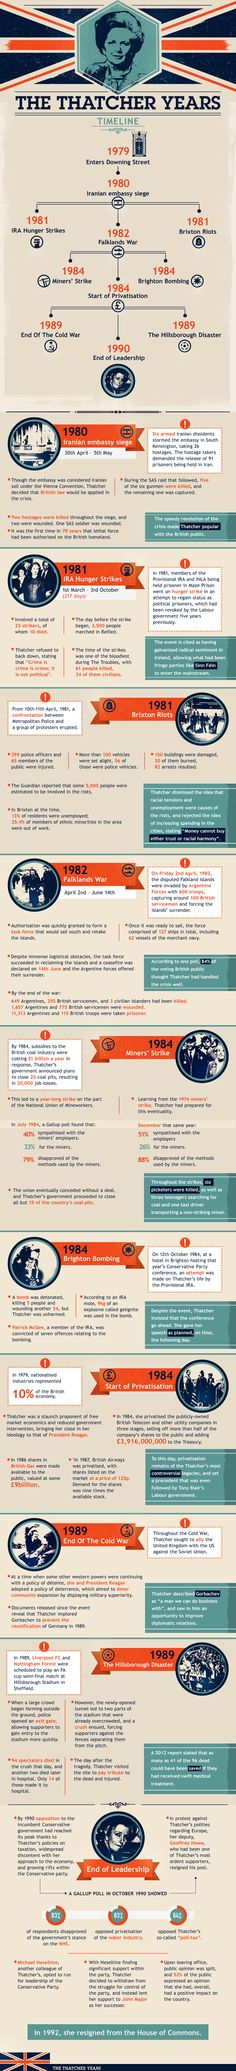 Margaret Thatcher infographic: Policies and pitfalls of the Thatcher years